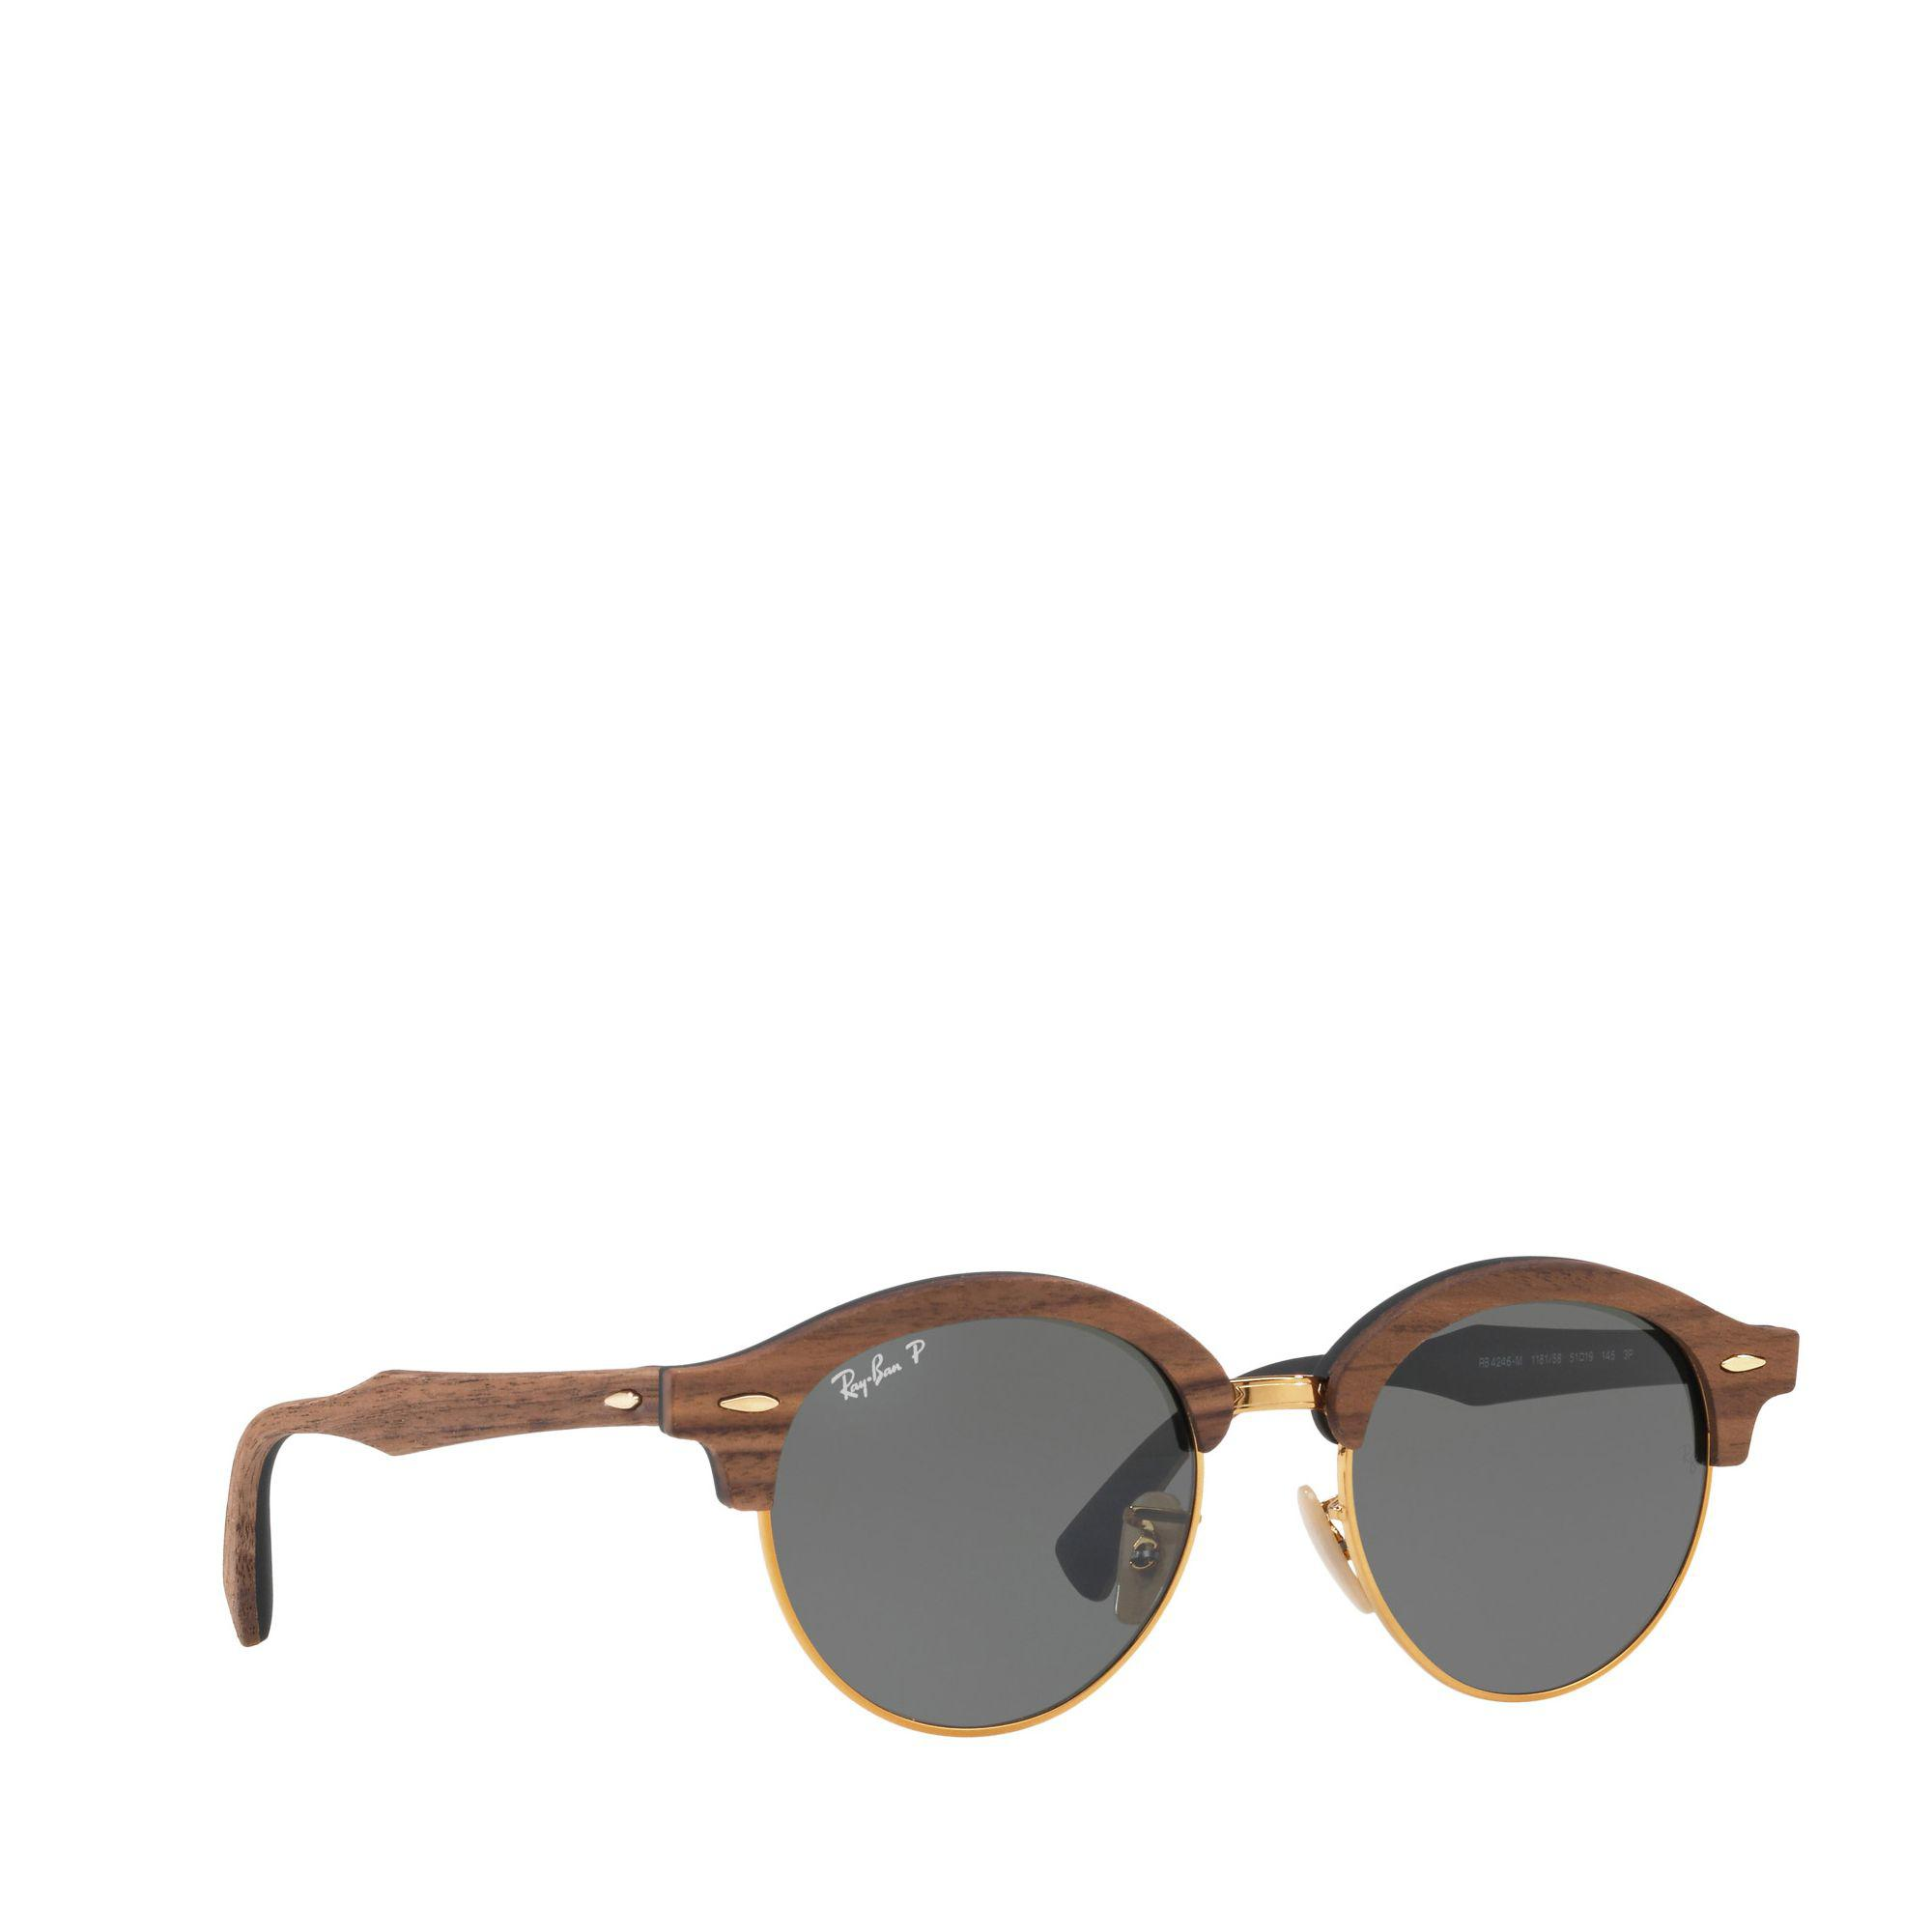 21b9c9bad6 ... promo code ray ban gold rb4246m round sunglasses in brown for men lyst  69b6e 366a4